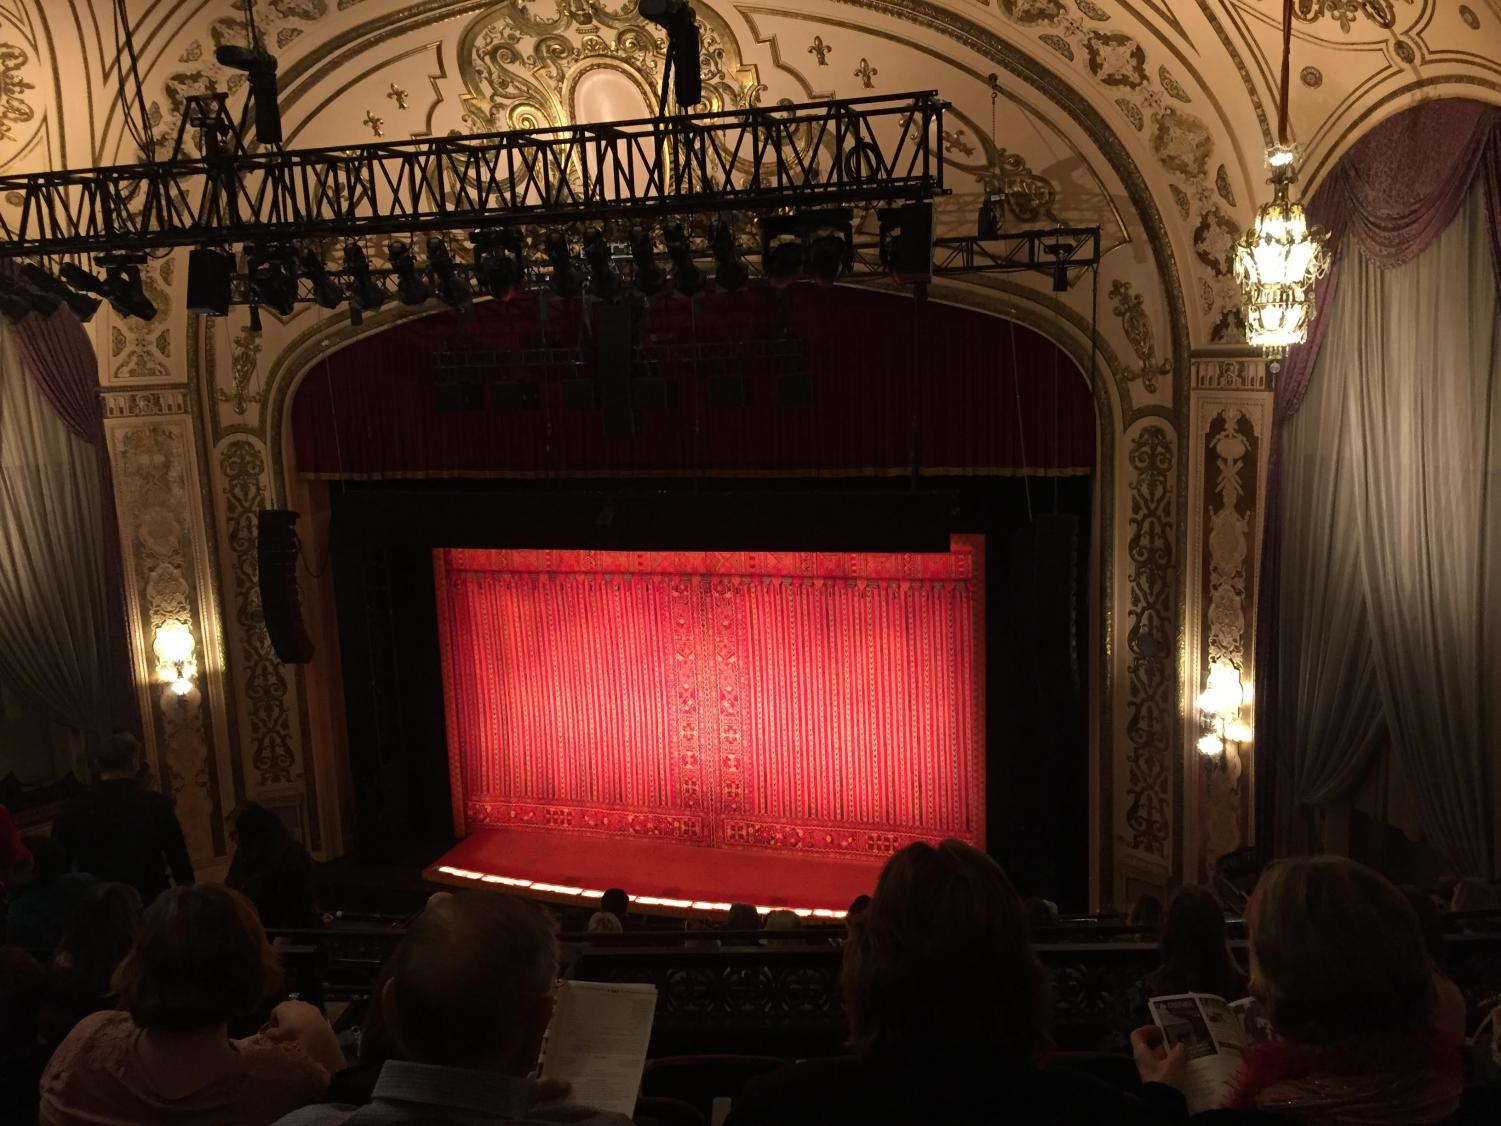 The quilt-like curtain displayed before the show.